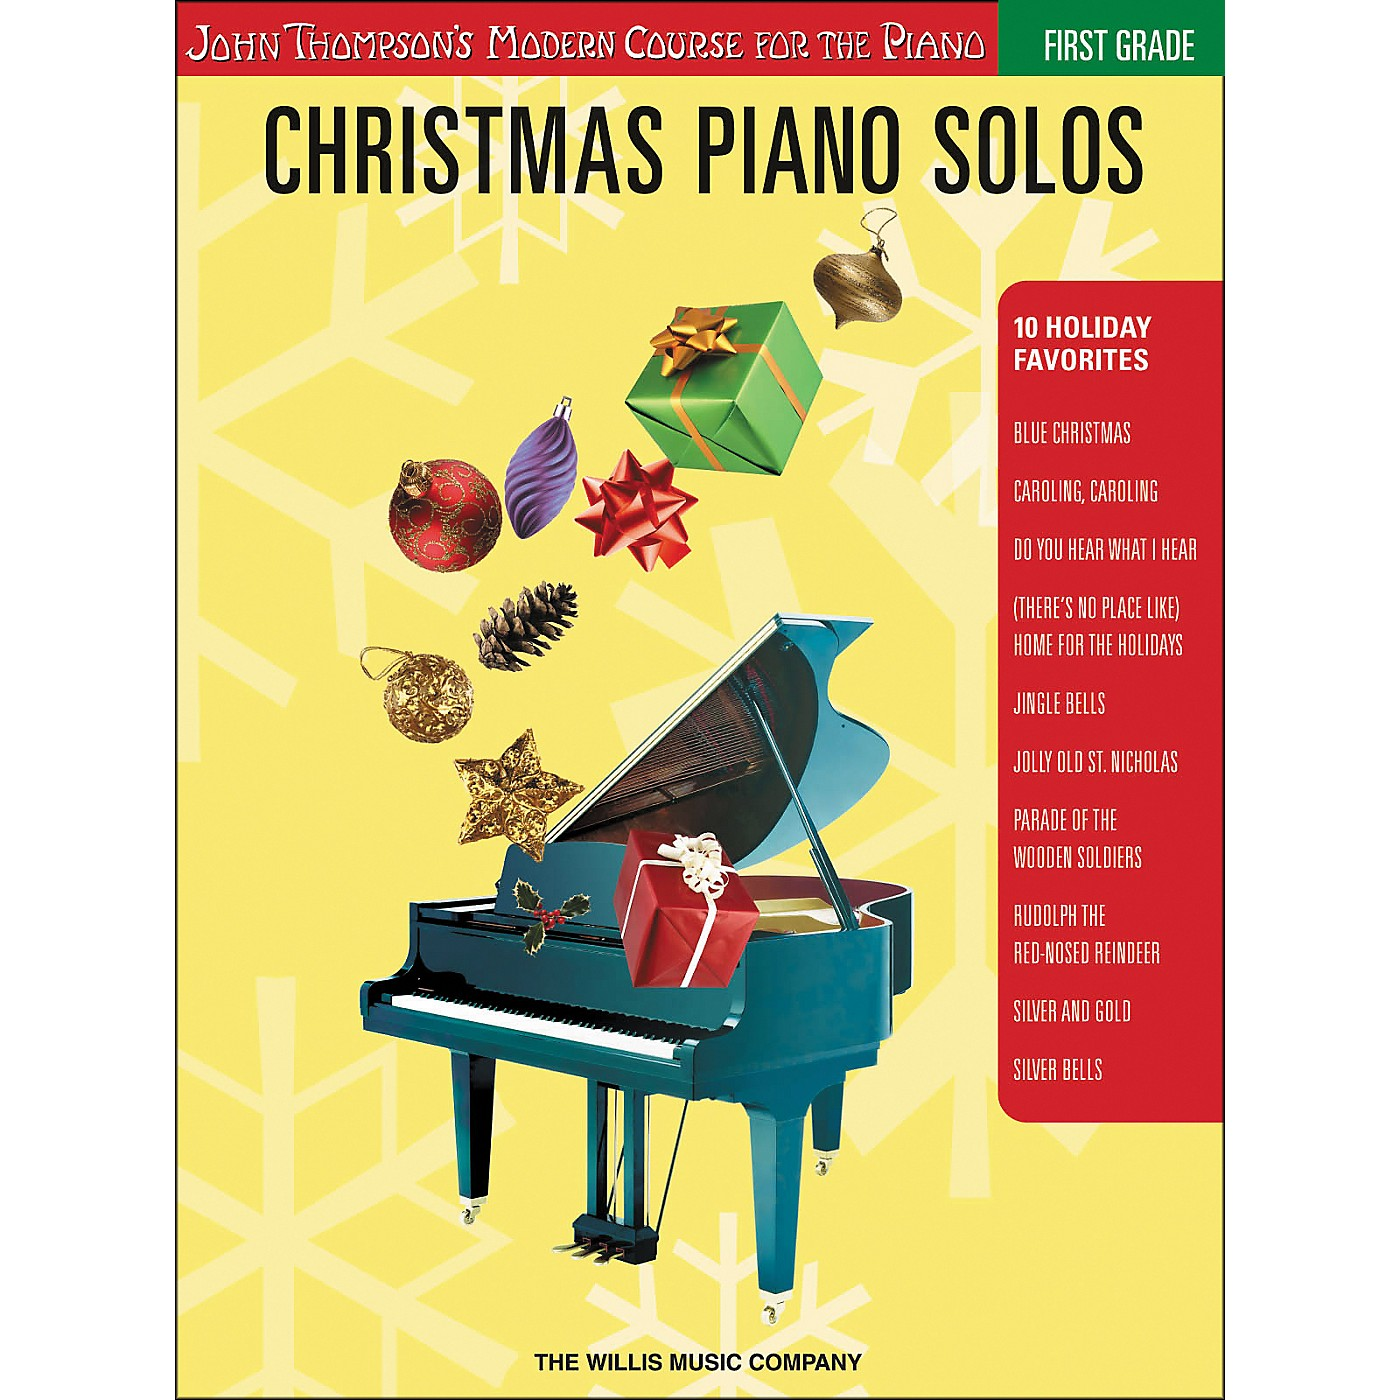 Willis Music John Thompson's Modern Course for the Piano - Christmas Piano Solos First Grade thumbnail